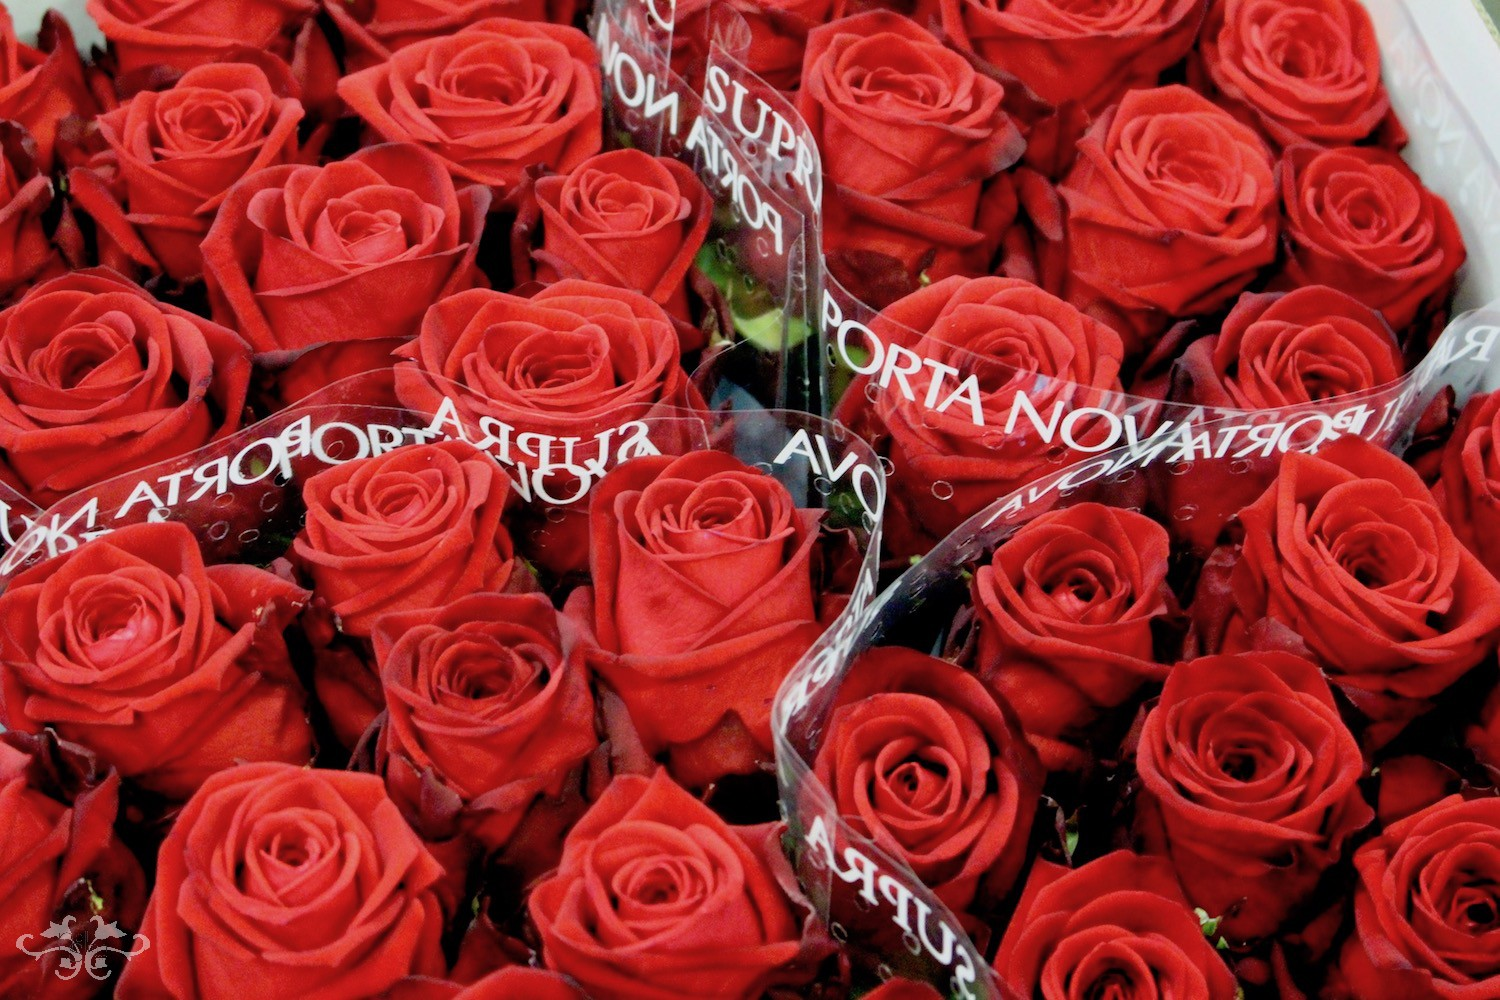 Red Naomi Roses at Porta Nova selected especially for Neill Strain Floral Couture for Valentine's Day